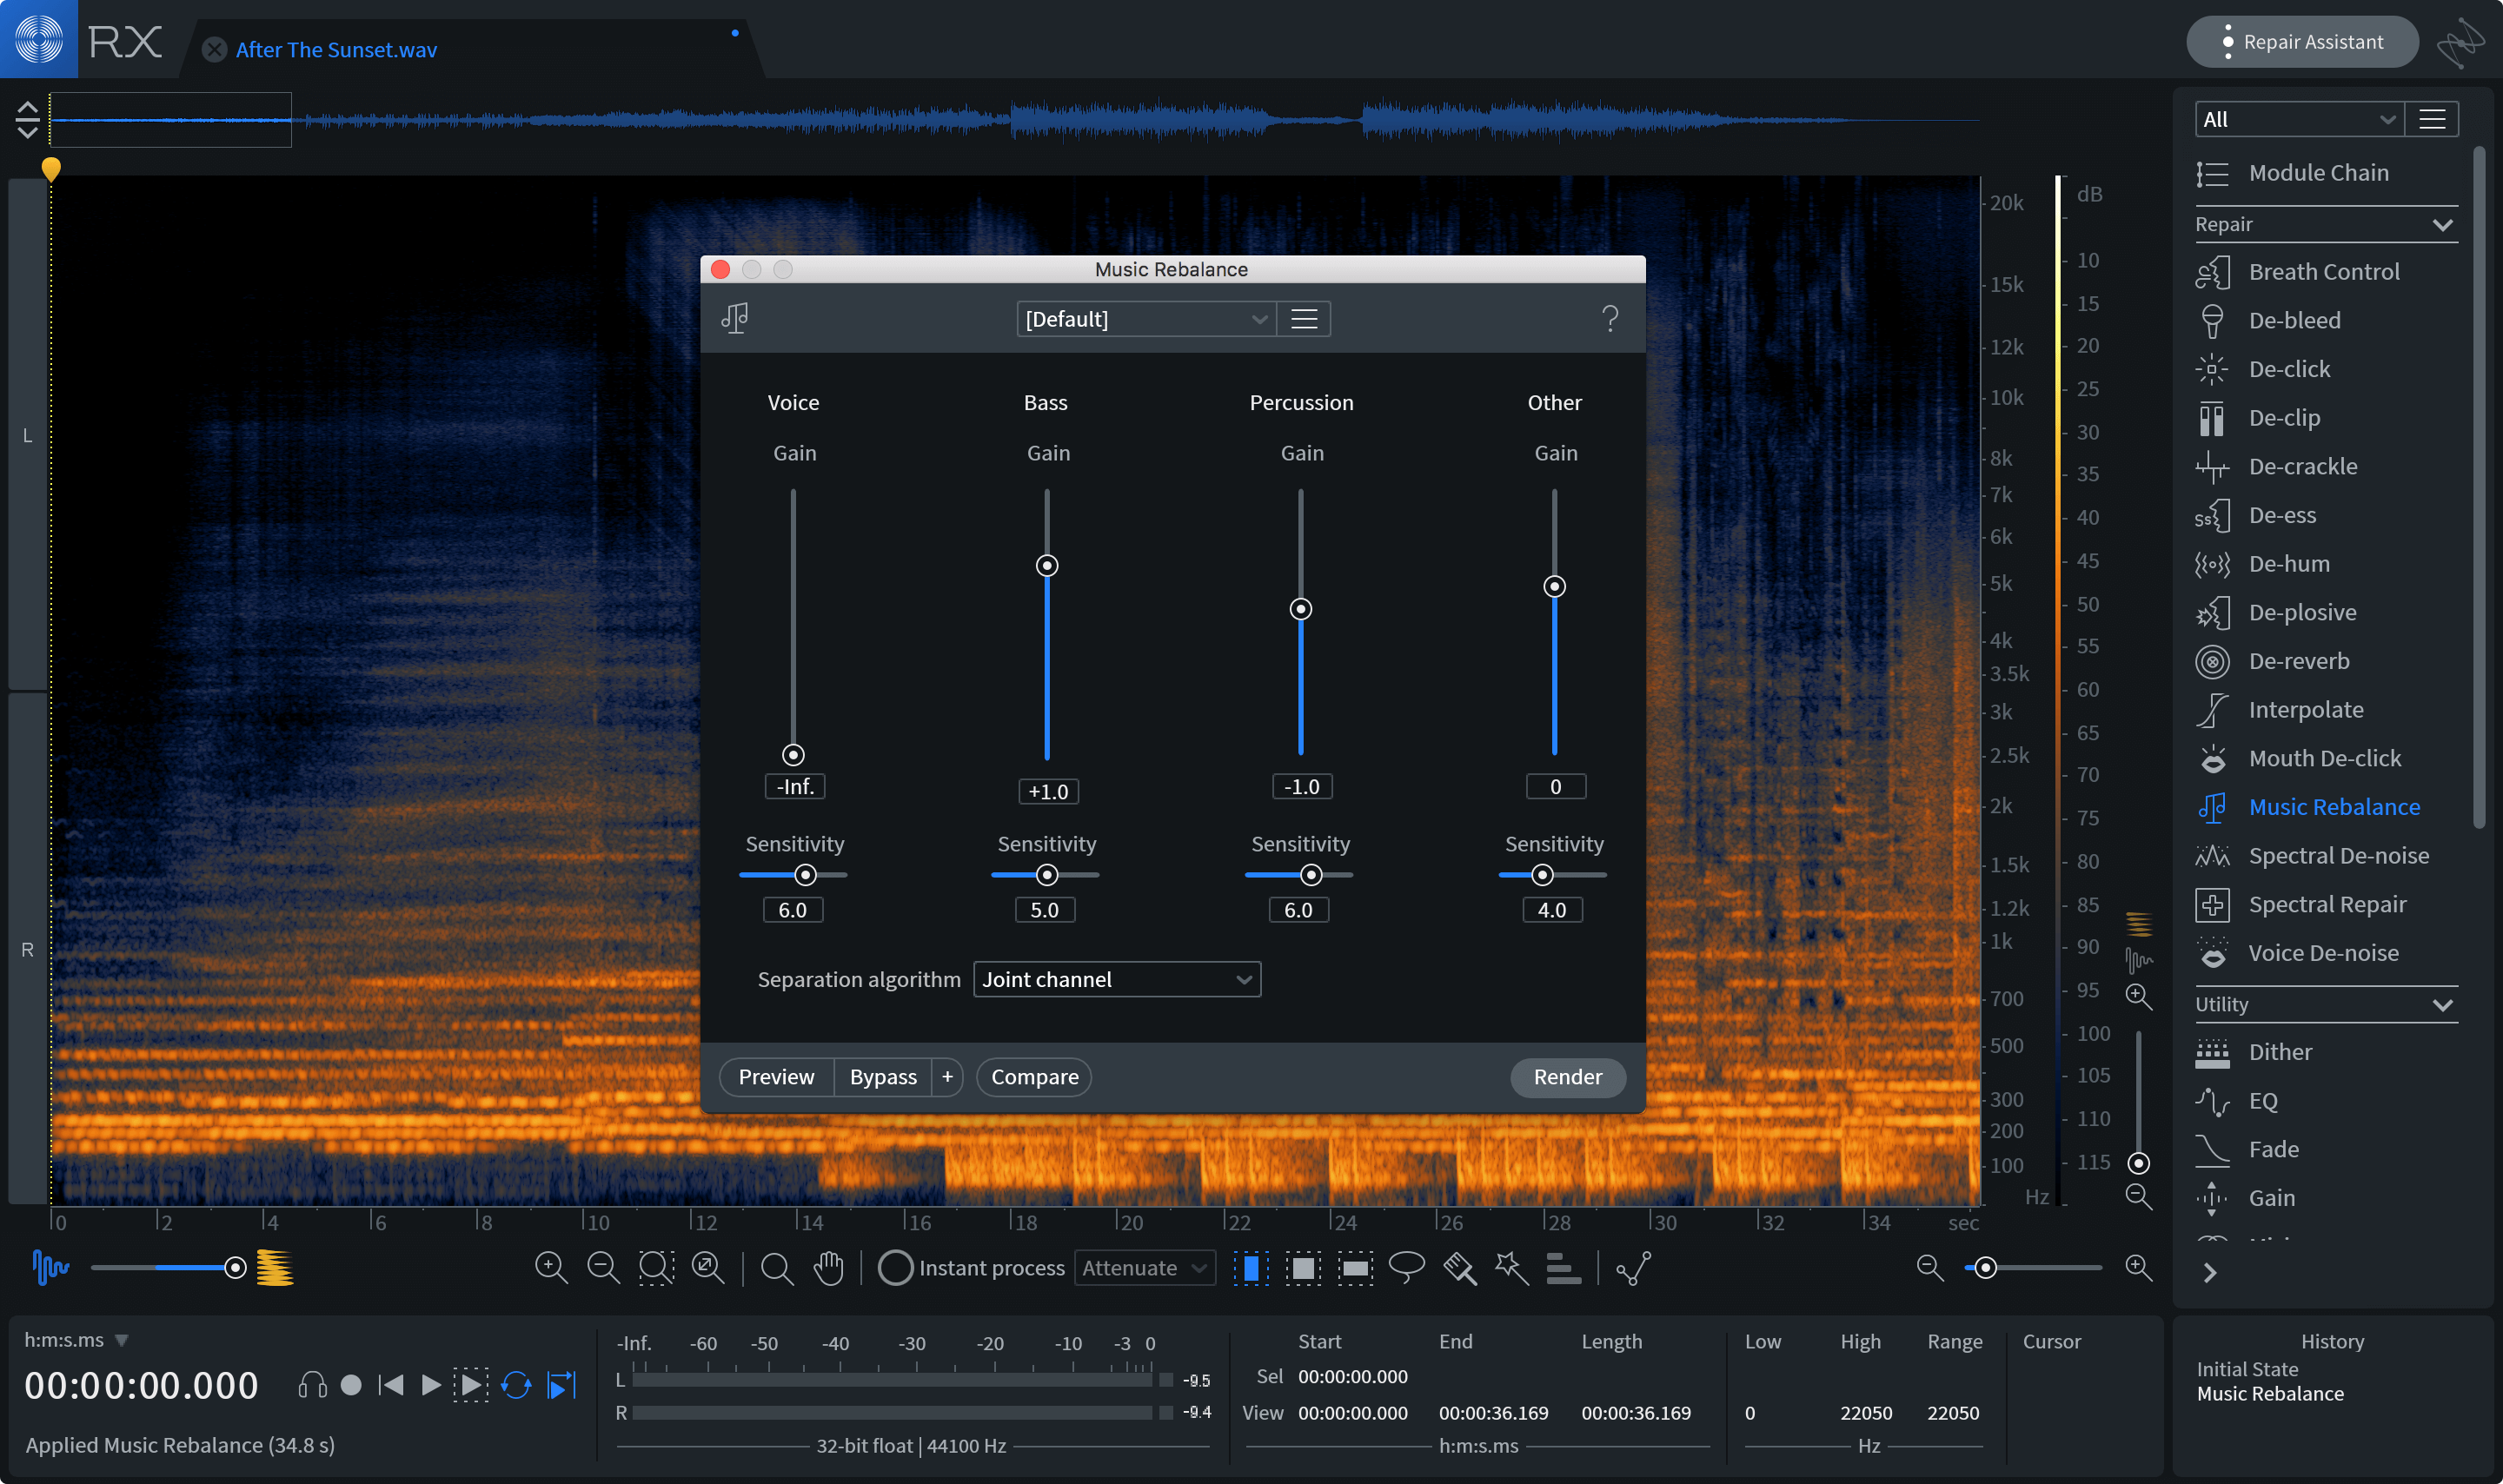 iZotope launches RX 7 with Music Rebalance & Repair Assistant